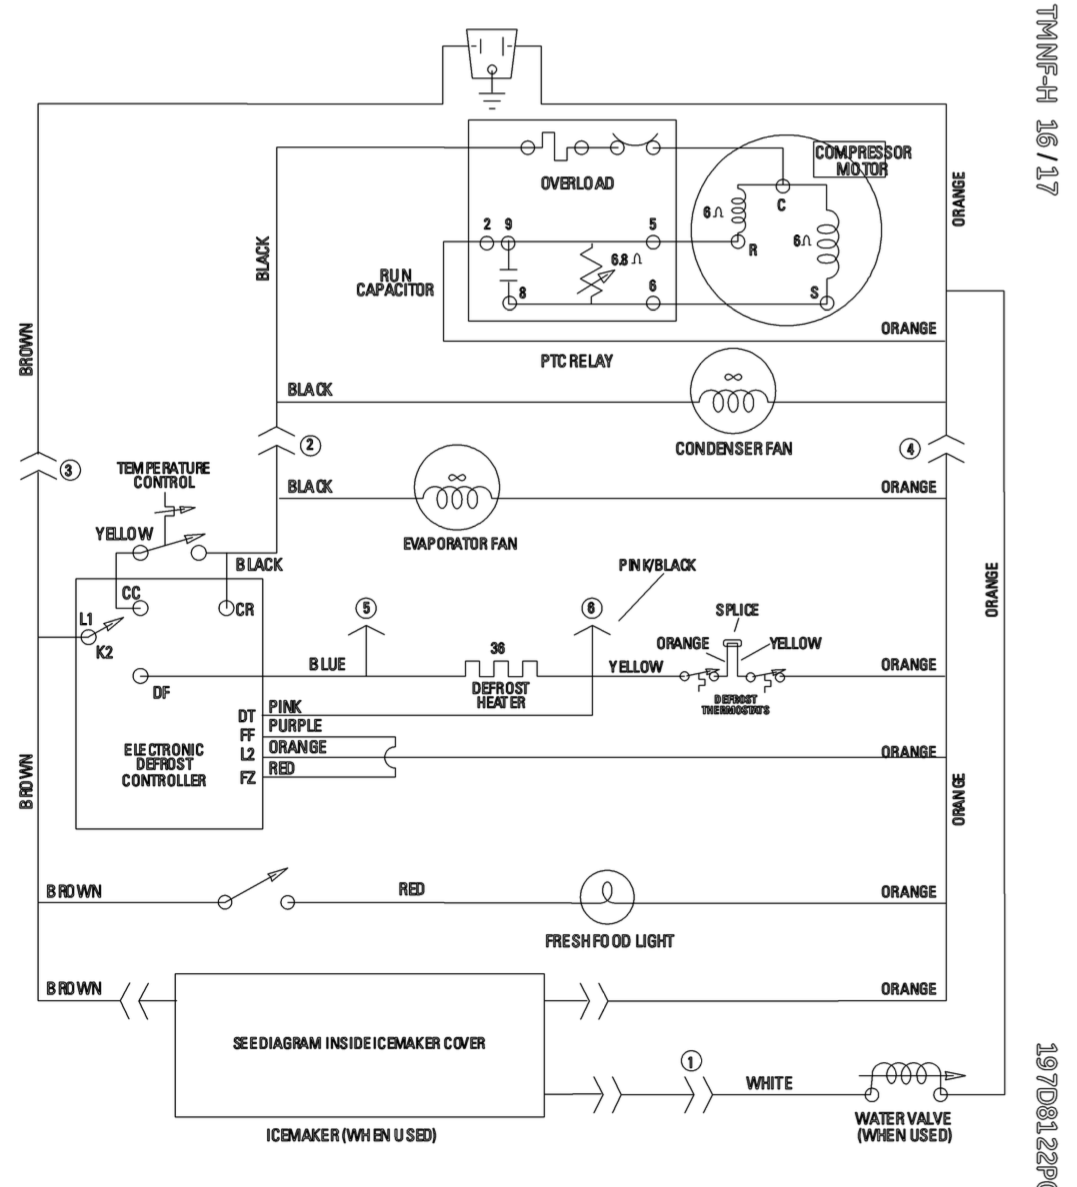 hight resolution of ge profile refrigerator wiring schematic wire diagram for refrigerator refrigerator compressor diagram wire diagram for ge